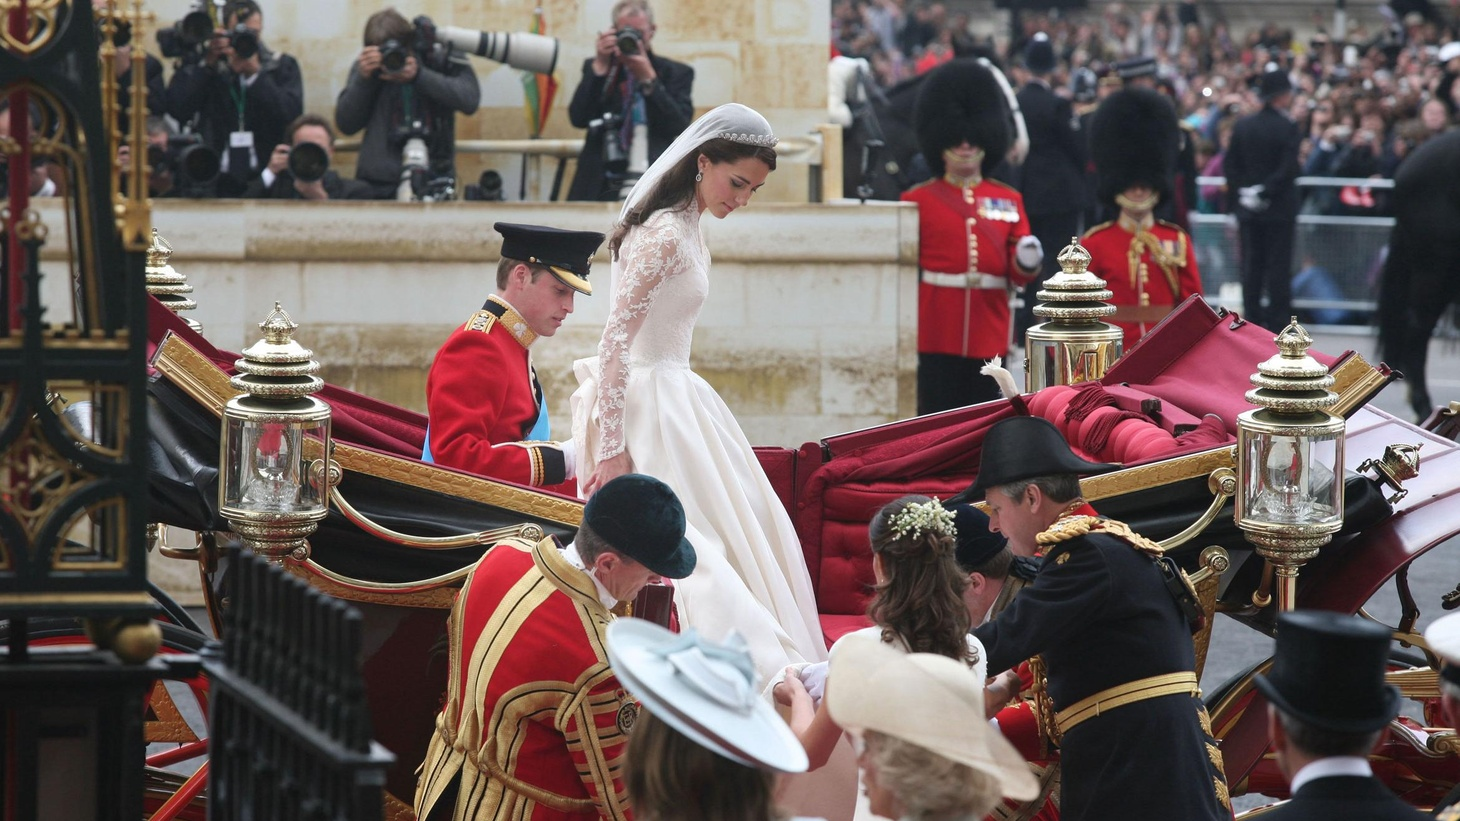 With all the trappings of history, will today's royal wedding raise the spirits of a modern nation in the throes of austerity? What's the attraction of a marriage between two people whose power is more symbolic than real?